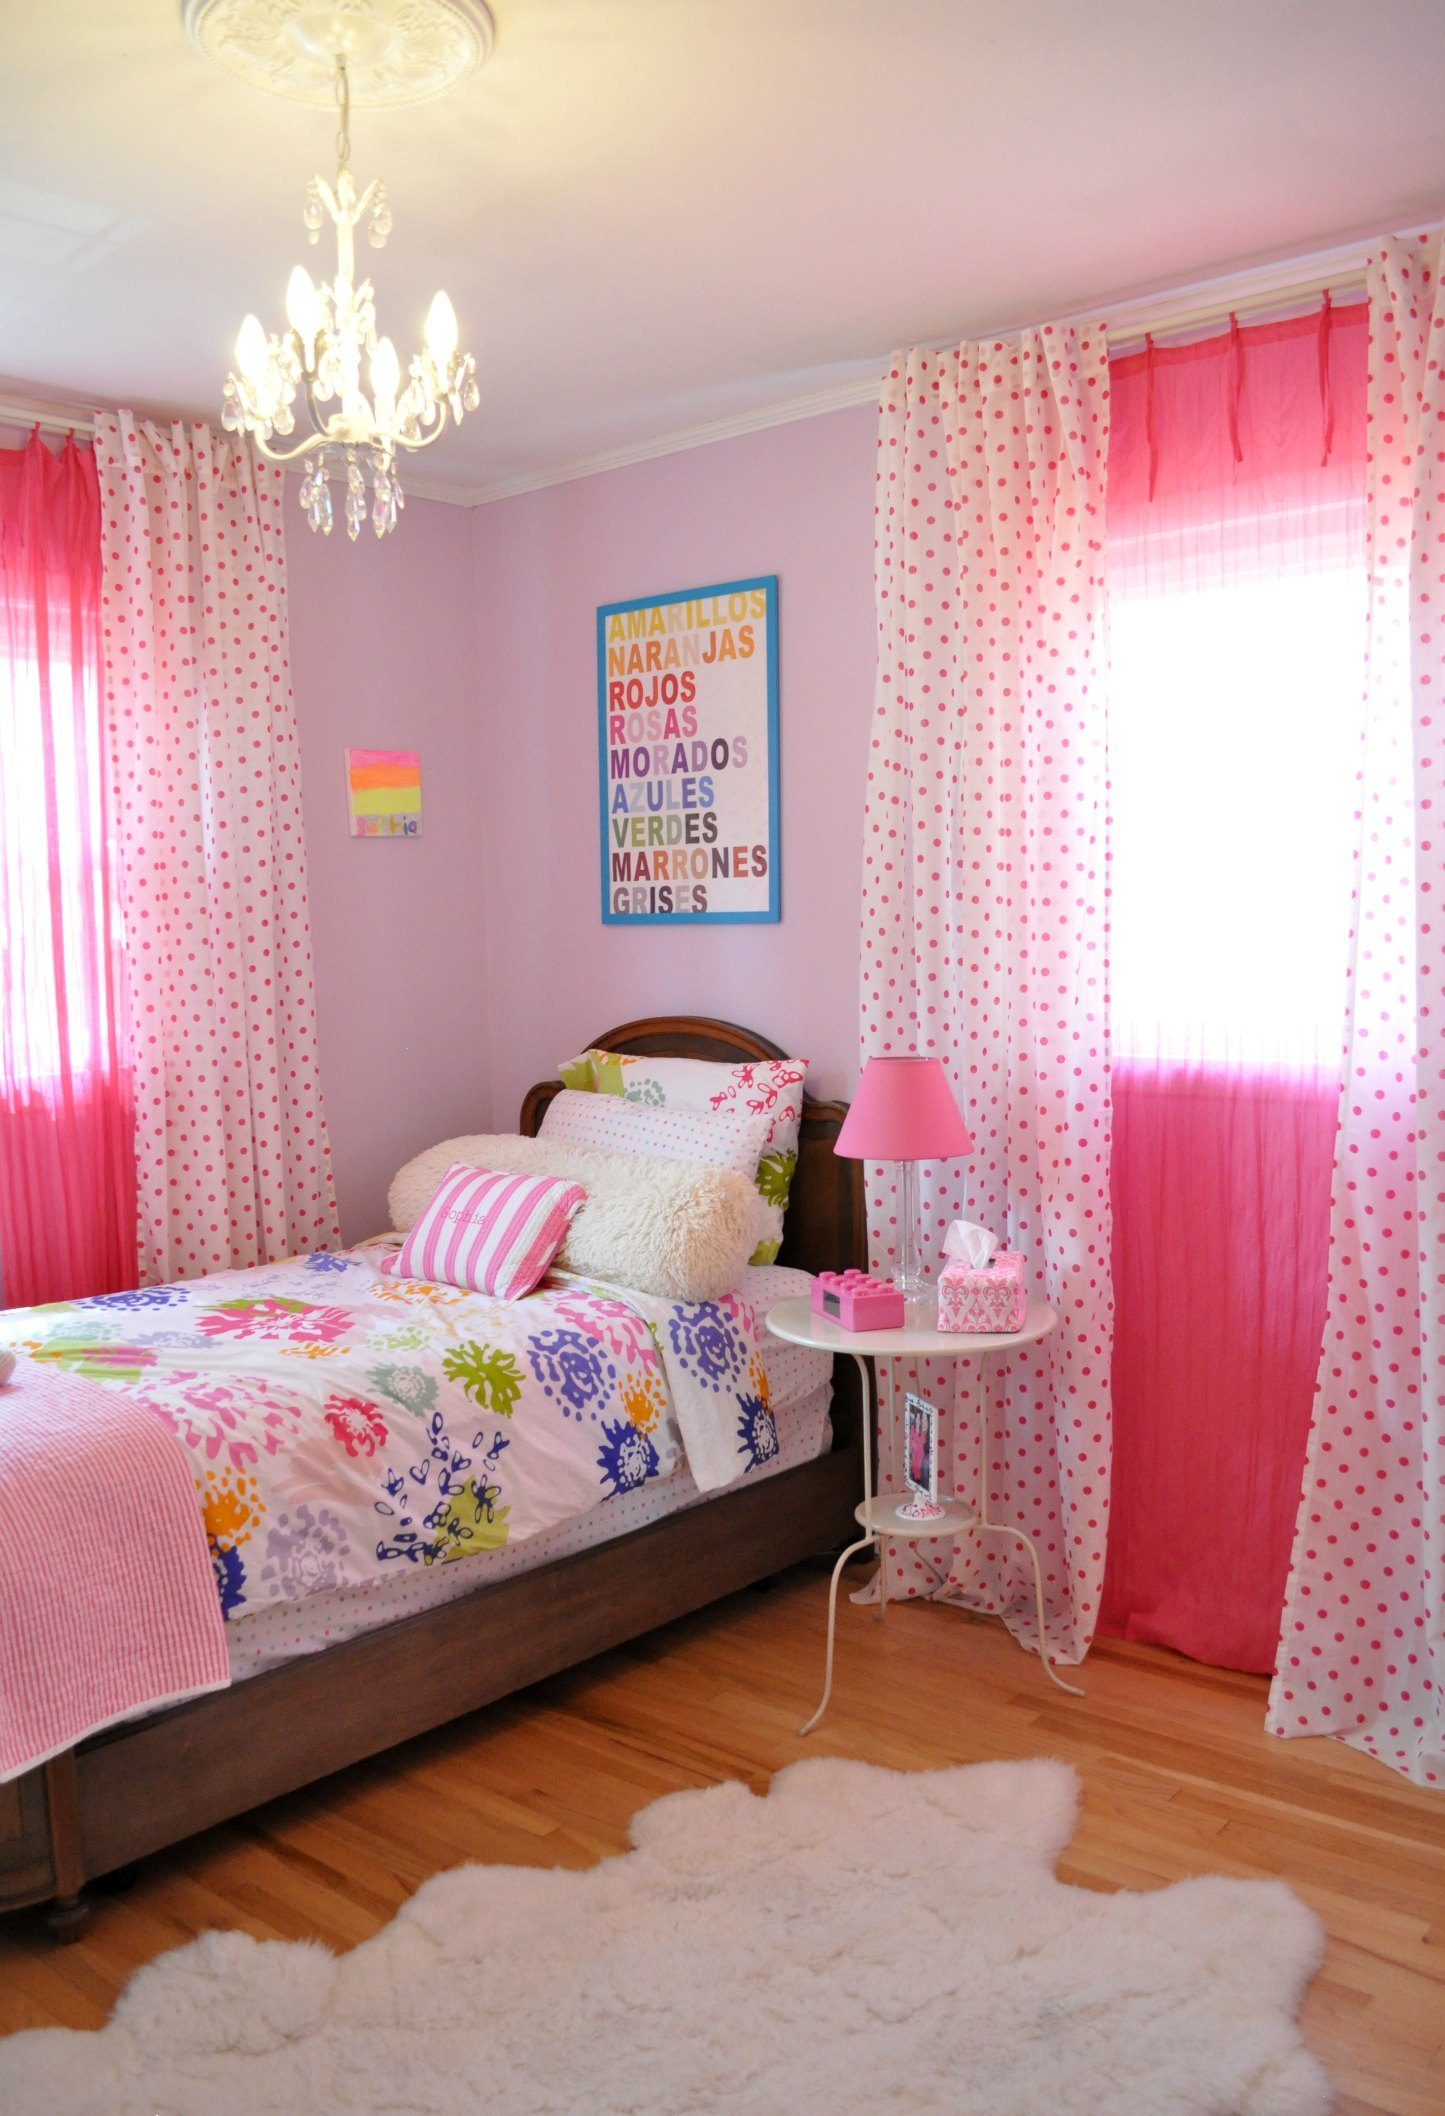 25 Creative Pink Bedroom Design Ideas - Decoration Love on Bedroom Ideas For Small Room  id=37240